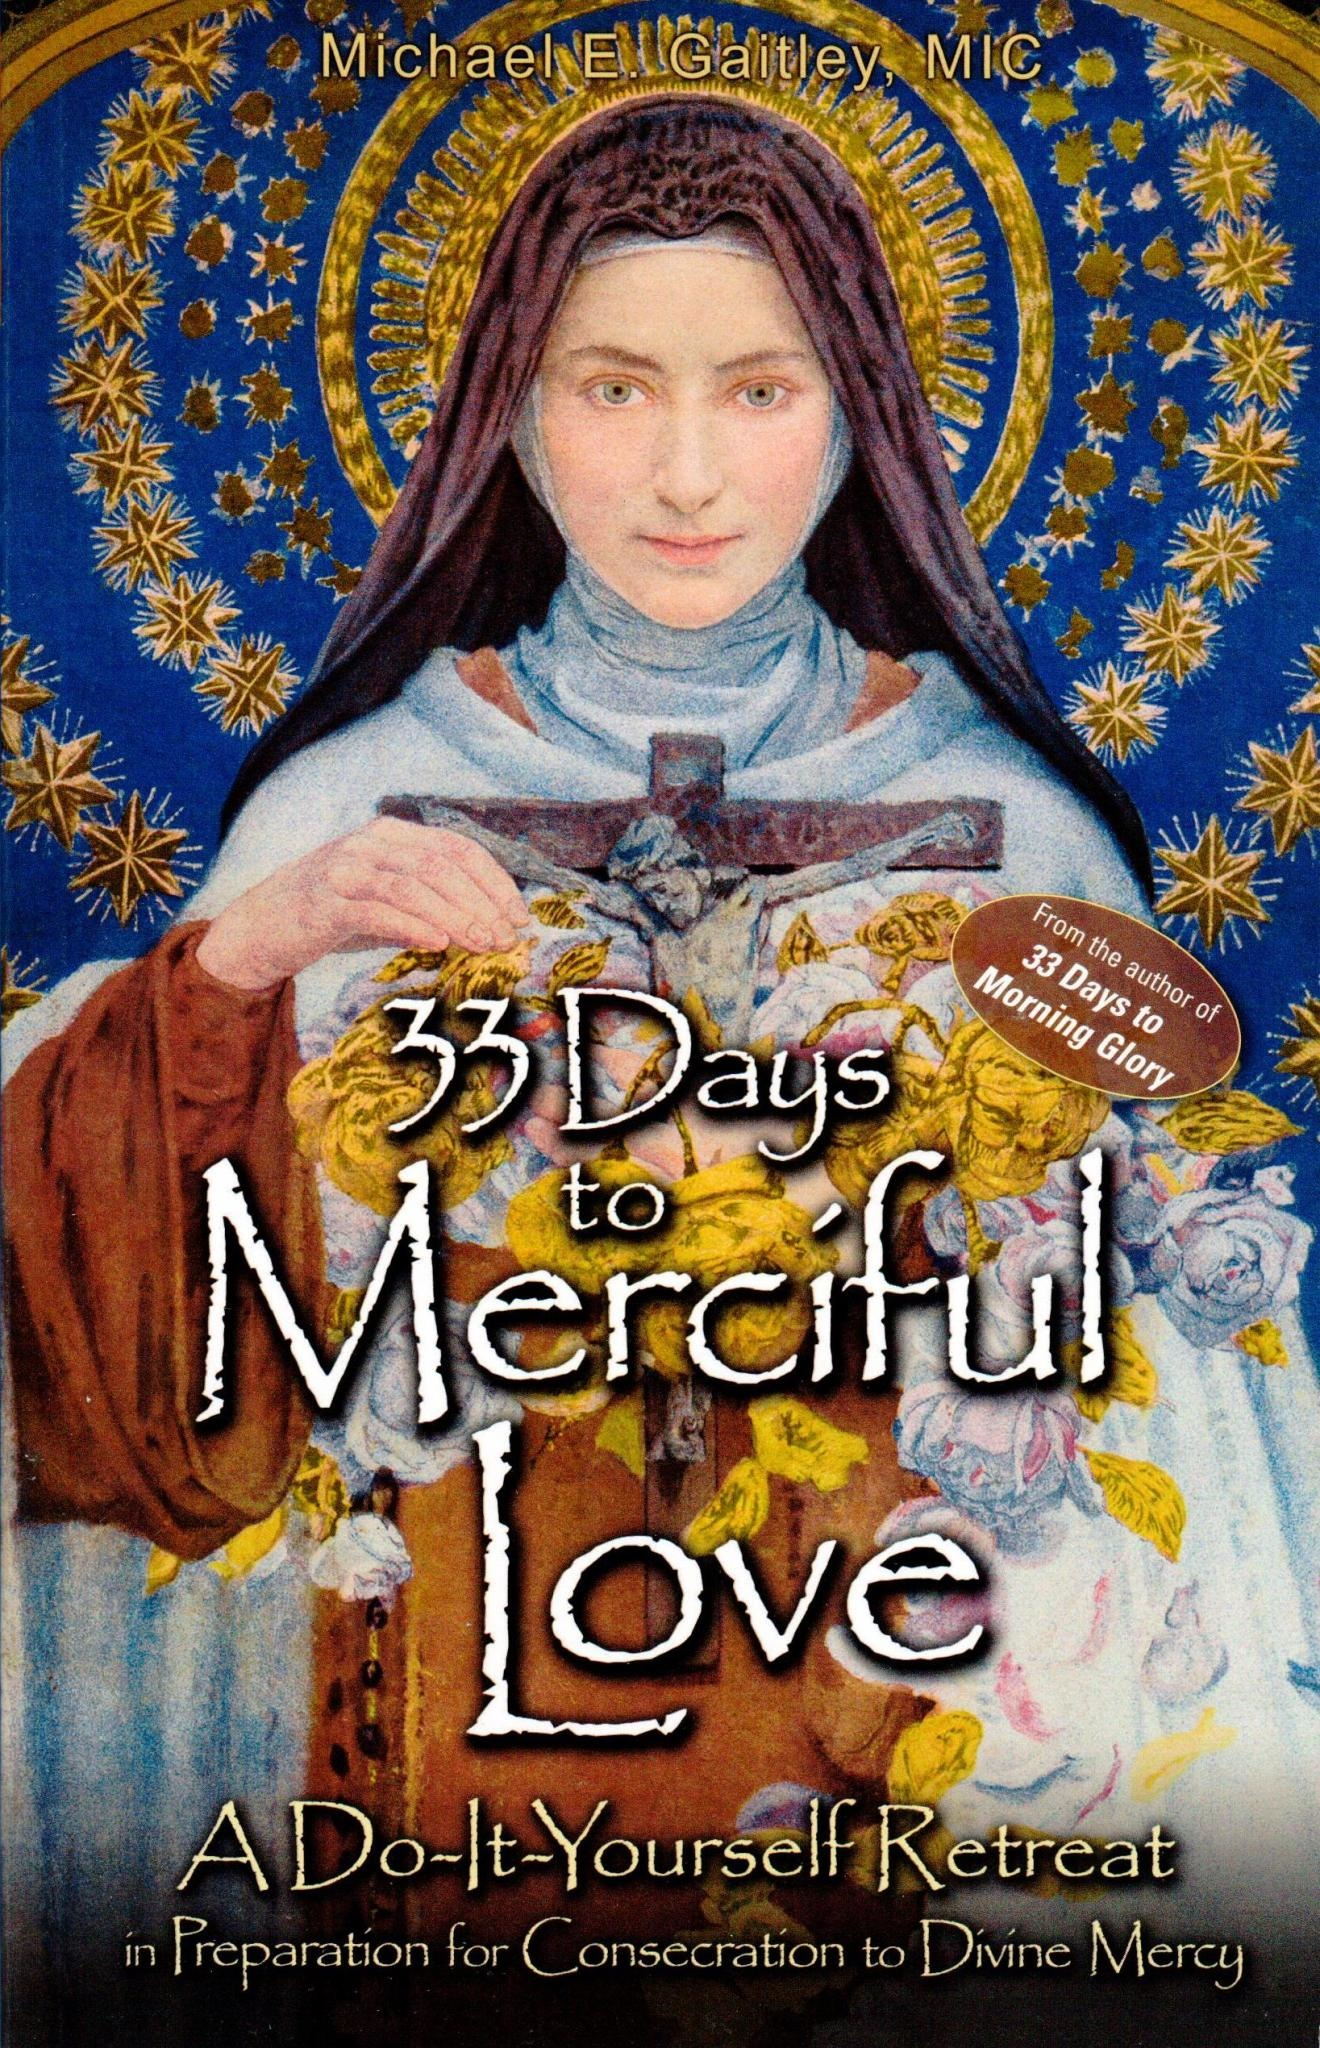 33 Days to Merciful Love: A Do-It Yourself Retreat in Preparation for Consecration to Divine Mercy